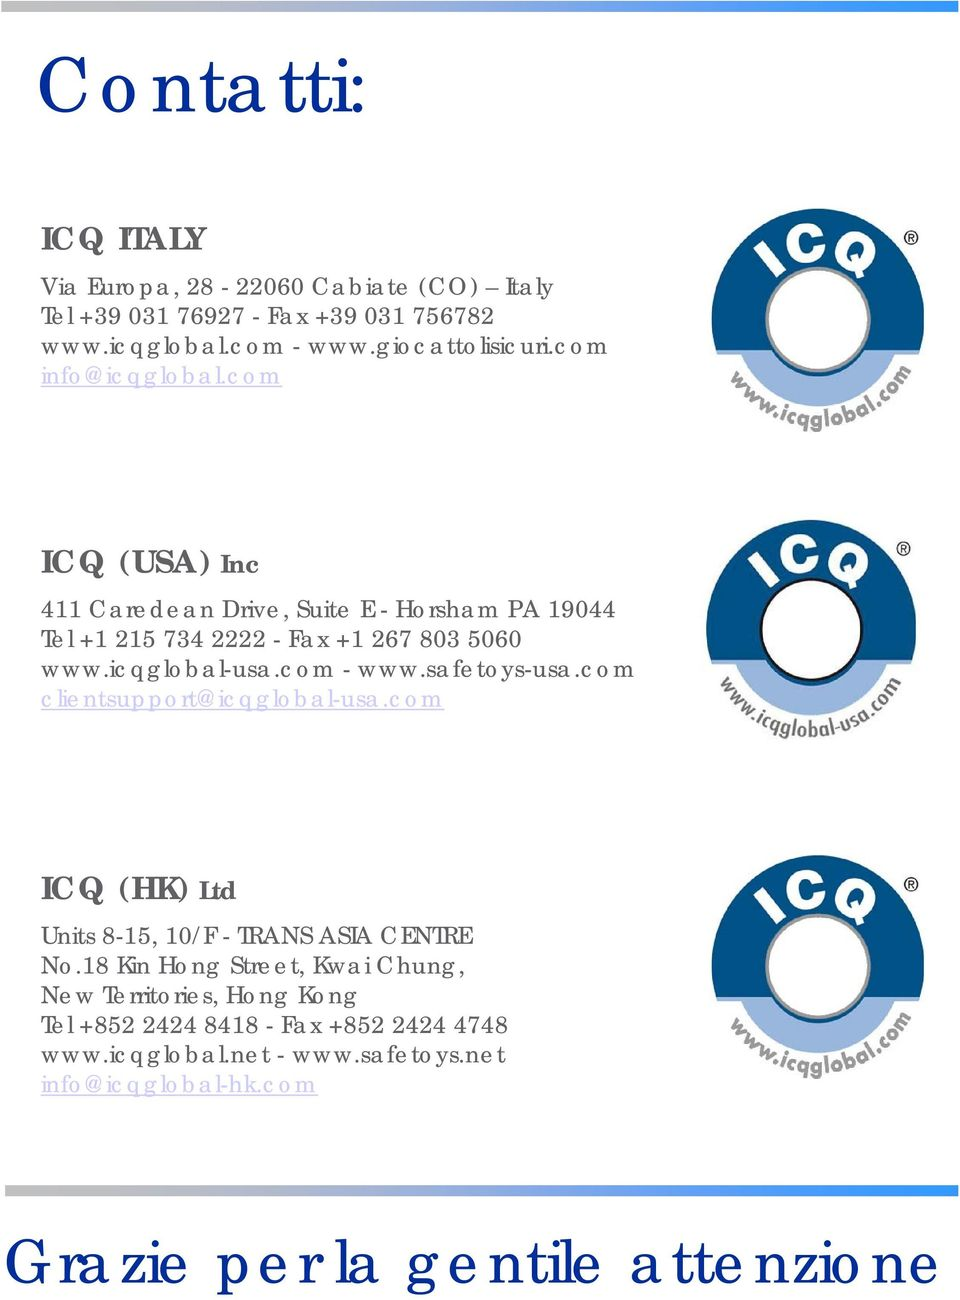 com - www.safetoys-usa.com clientsupport@icqglobal-usa.com ICQ (HK) Ltd Units 8-15, 10/F - TRANS ASIA CENTRE No.